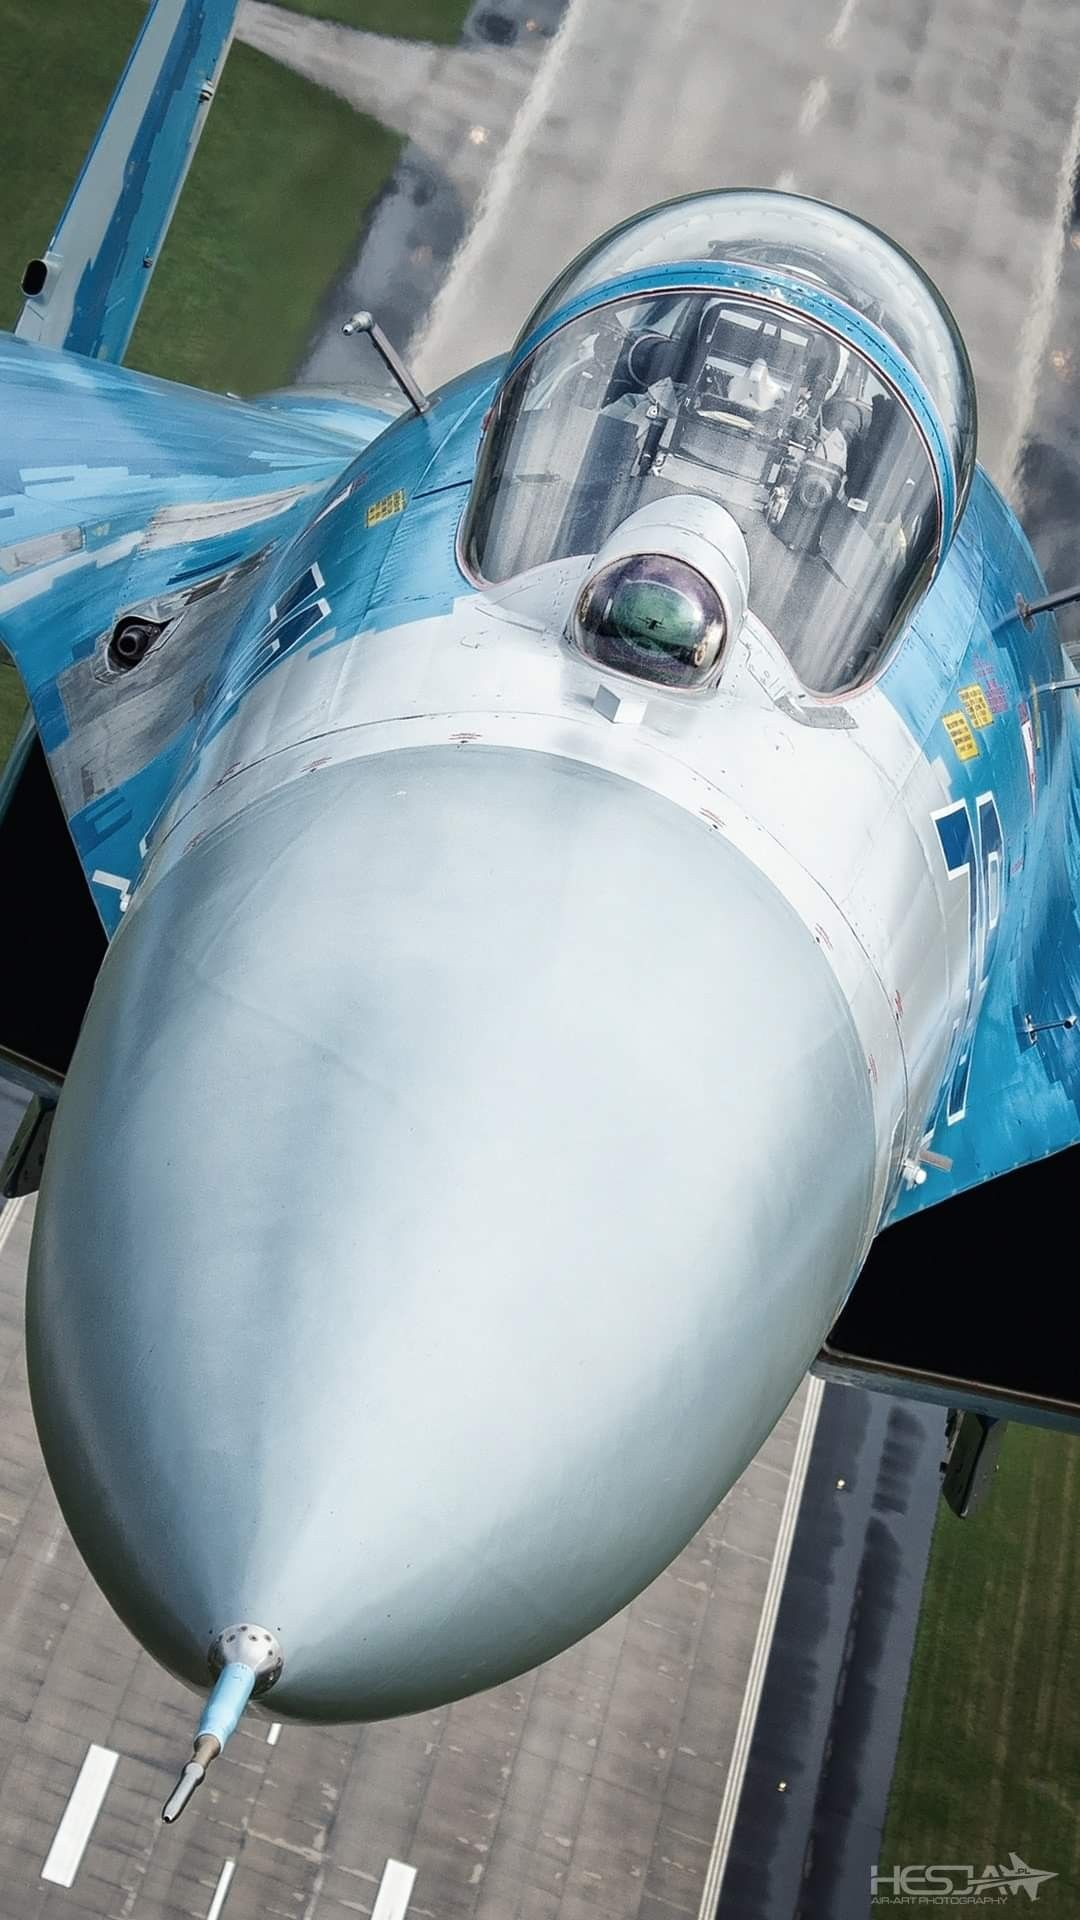 Pin By Gavin Green On Sukoi In 2020 Military Aircraft Jet Fighter Pilot Aircraft